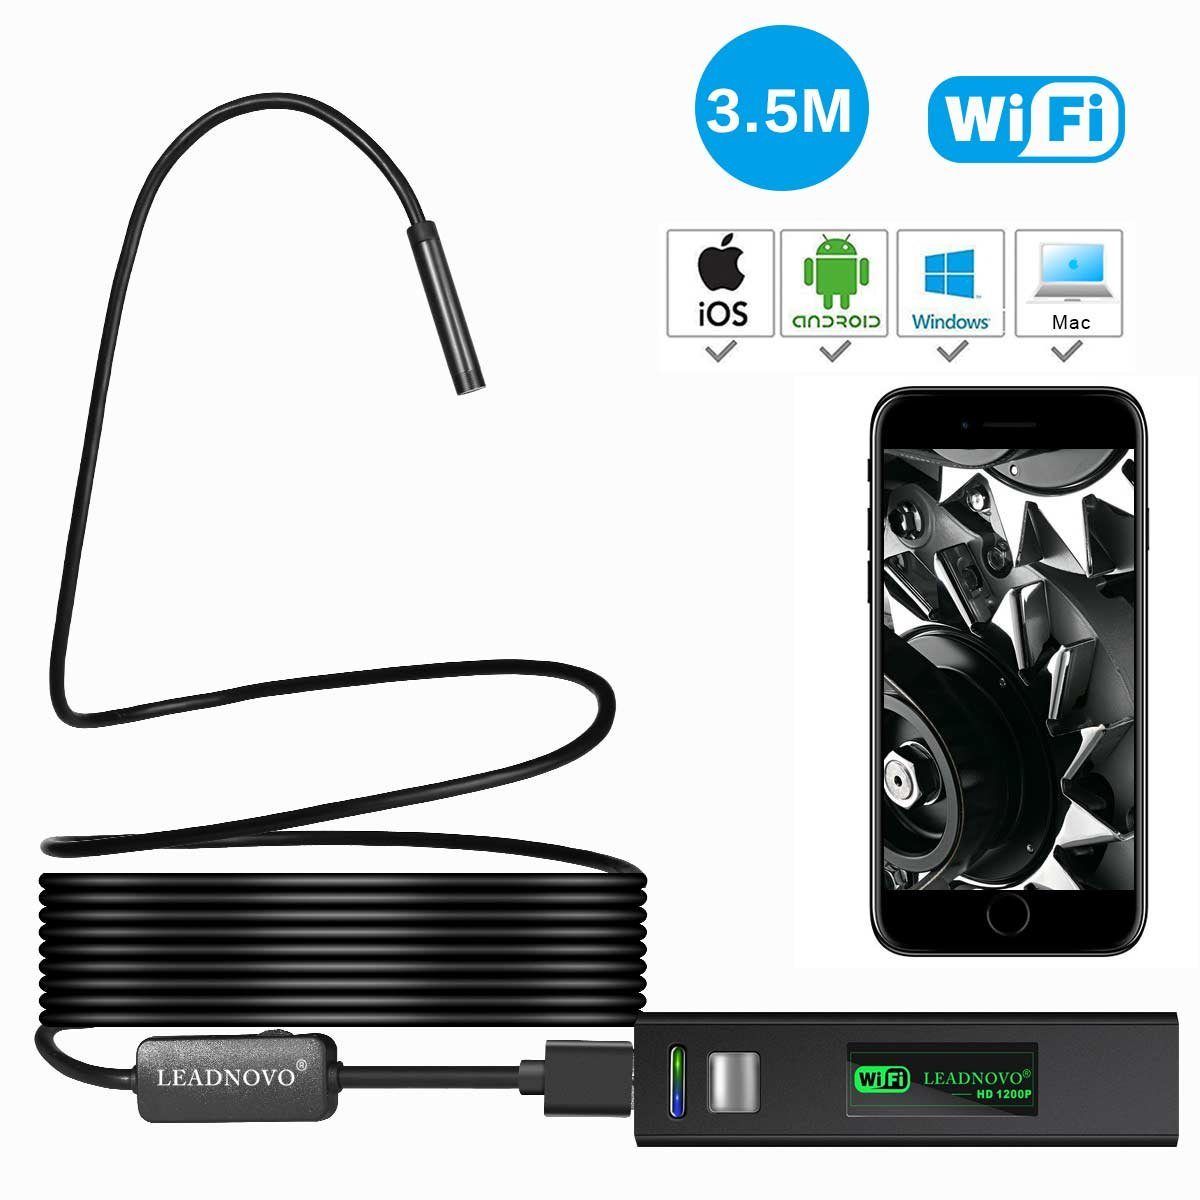 1200P Wireless Endoscope for iPhone Android, LEADNOVO WIFI Borescope Inspection HD Camera IP68 Waterproof Semi-rigid Snake Cable for IOS/MAC/Windows, Motor Engine/Sewer/Pipe/Vehicle-Black (11.5FT)